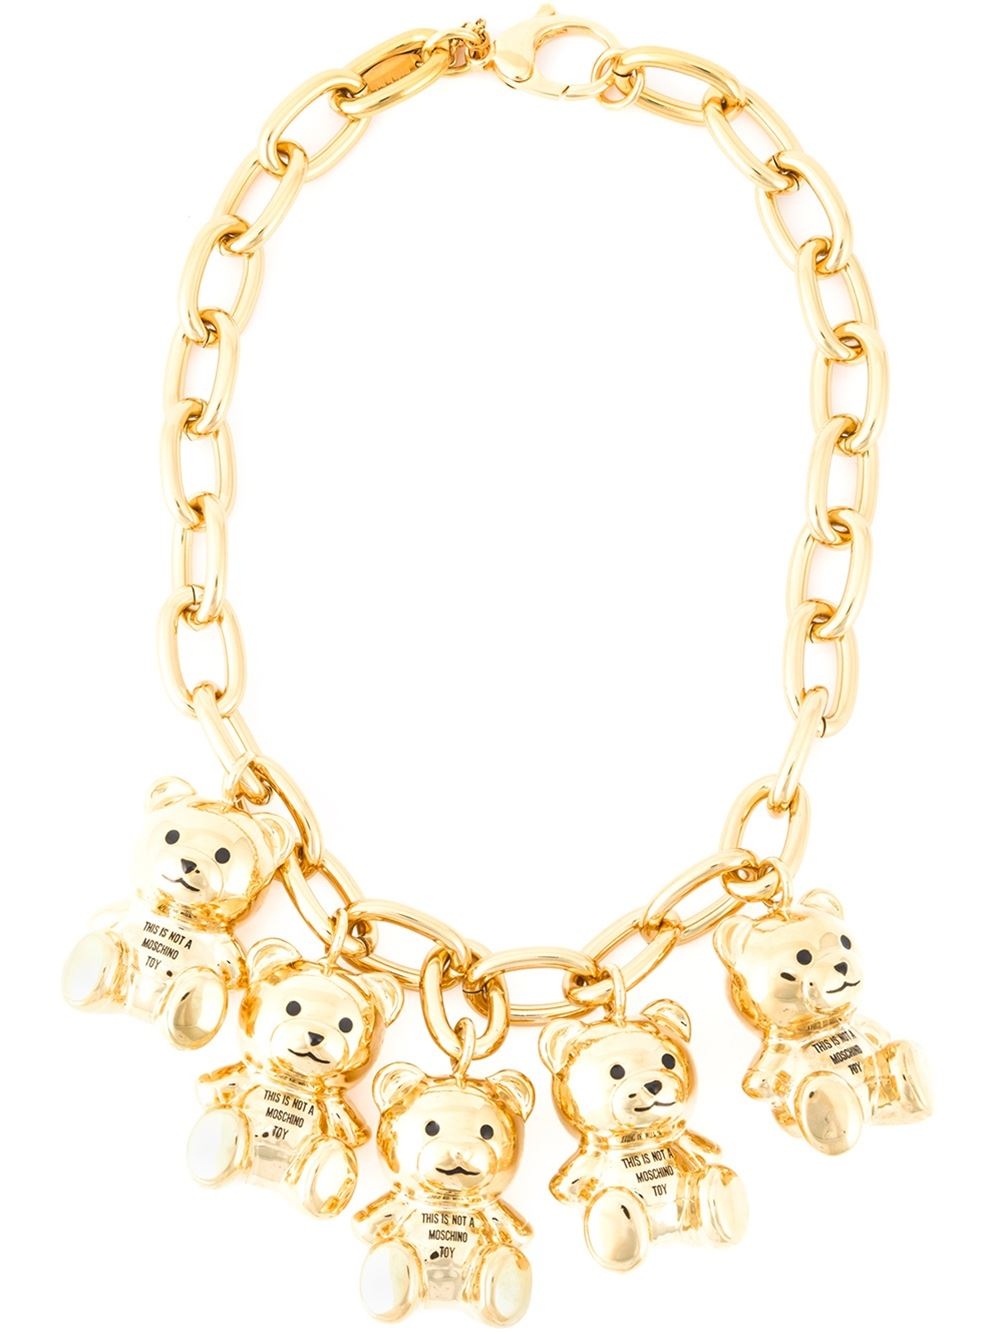 moschino_necklace.jpg